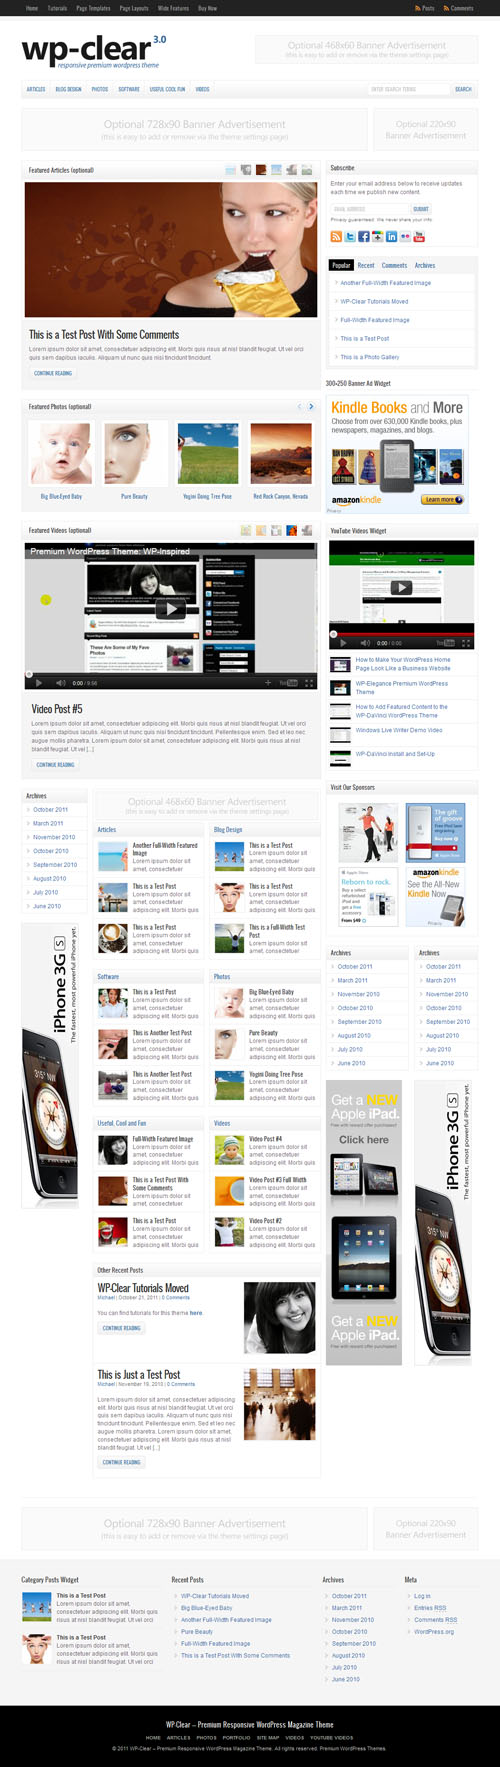 wp-clear-3-wordpress-theme